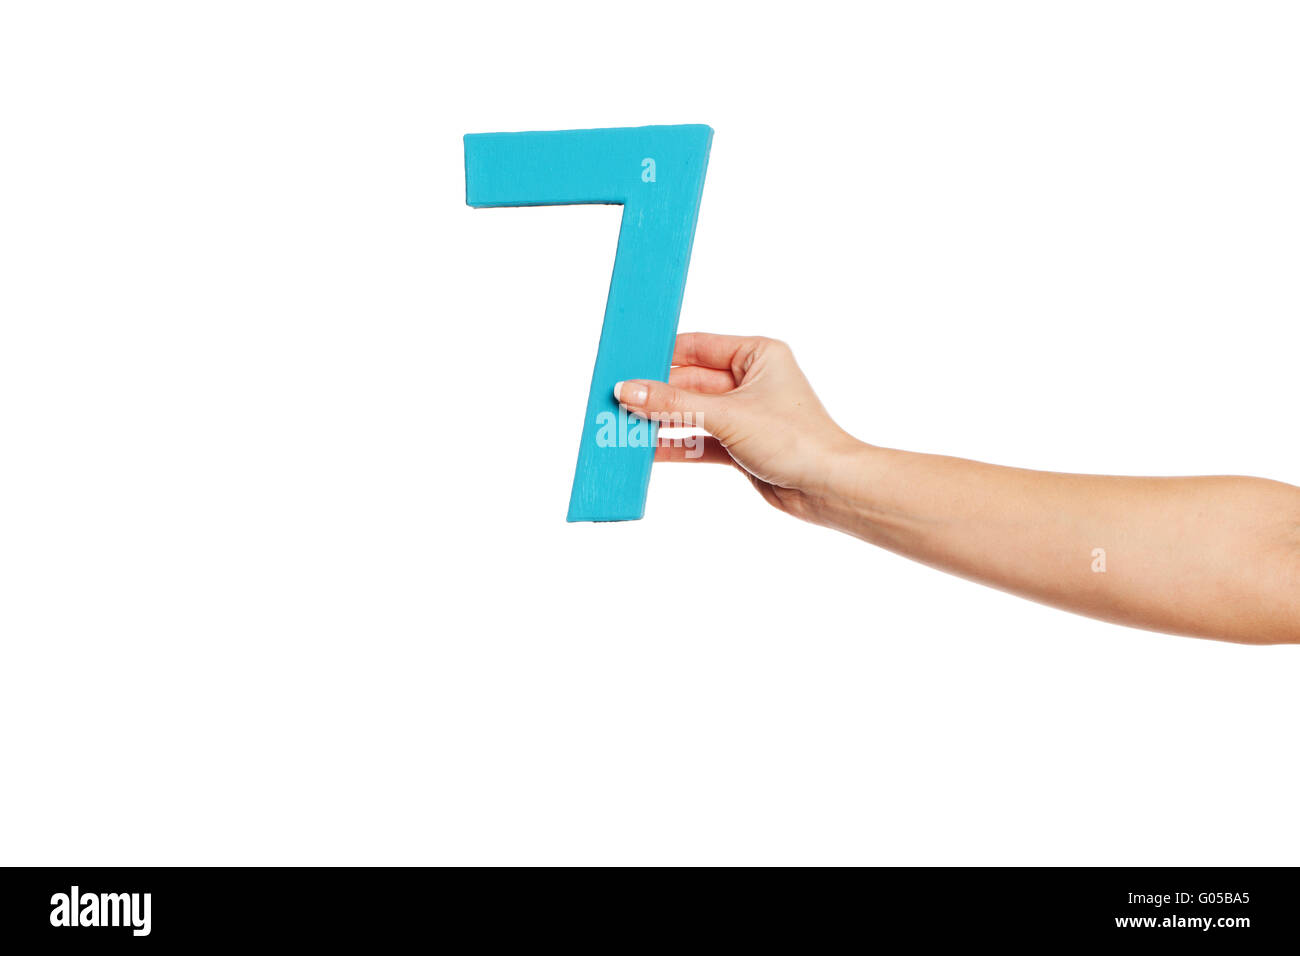 hand holding up the number seven from the right - Stock Image